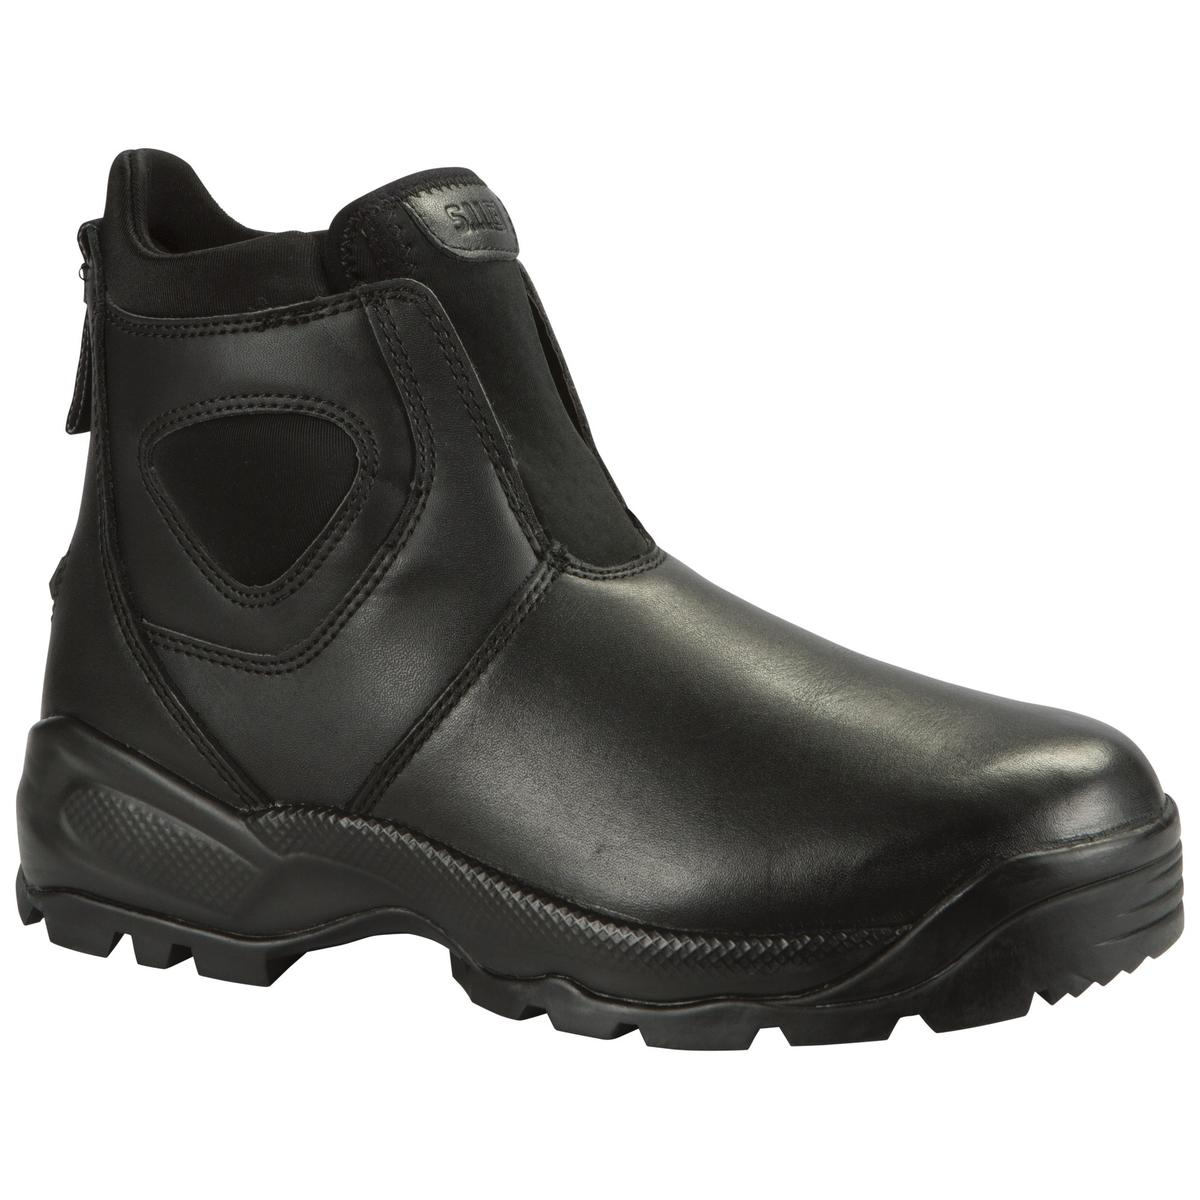 5.11 Tactical Company Boot 2.0, Pull On Boot, Law Enforcement, Work Boot, Black